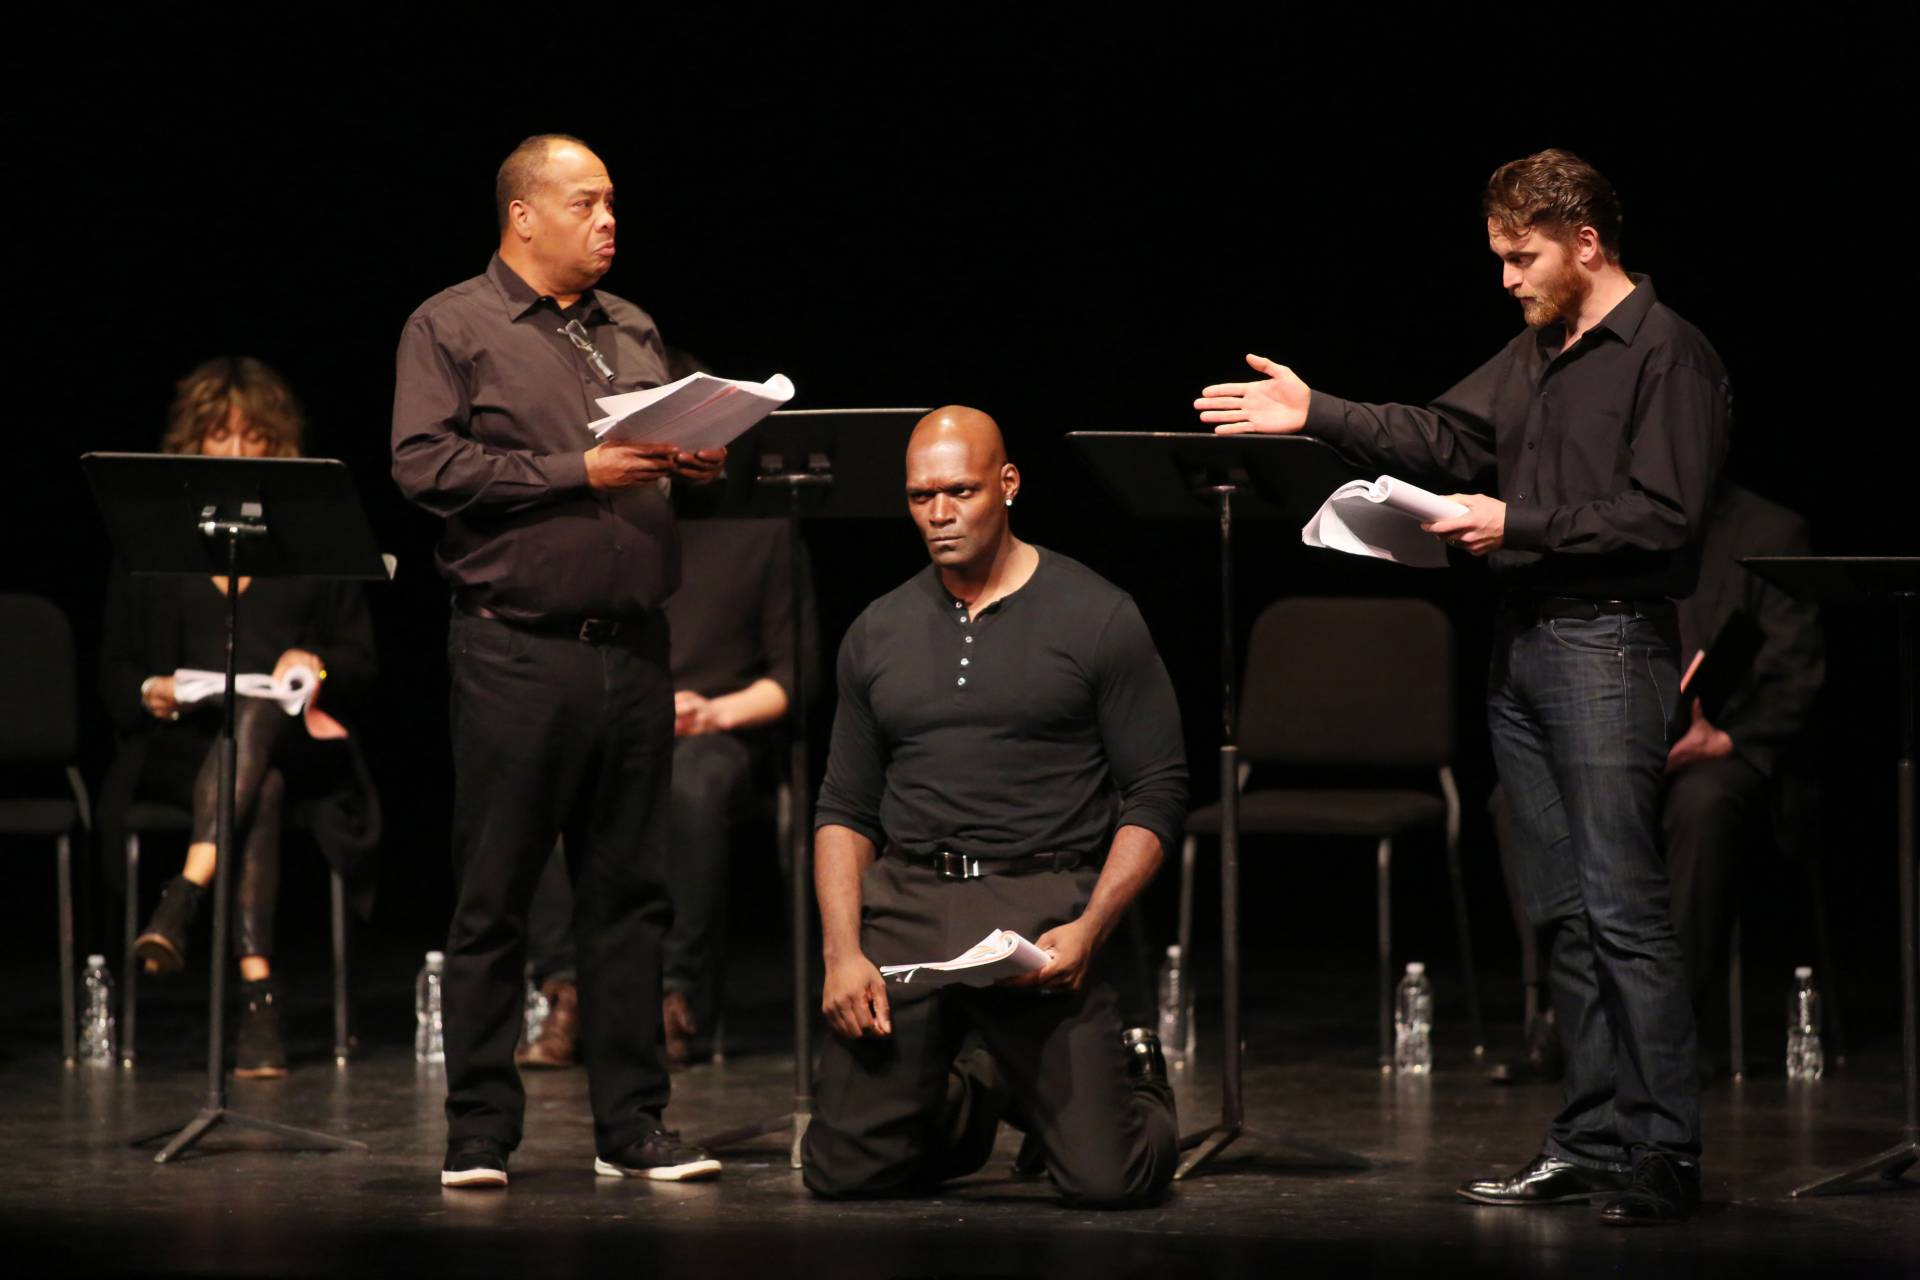 Princeton and Slavery Symposium drama performance